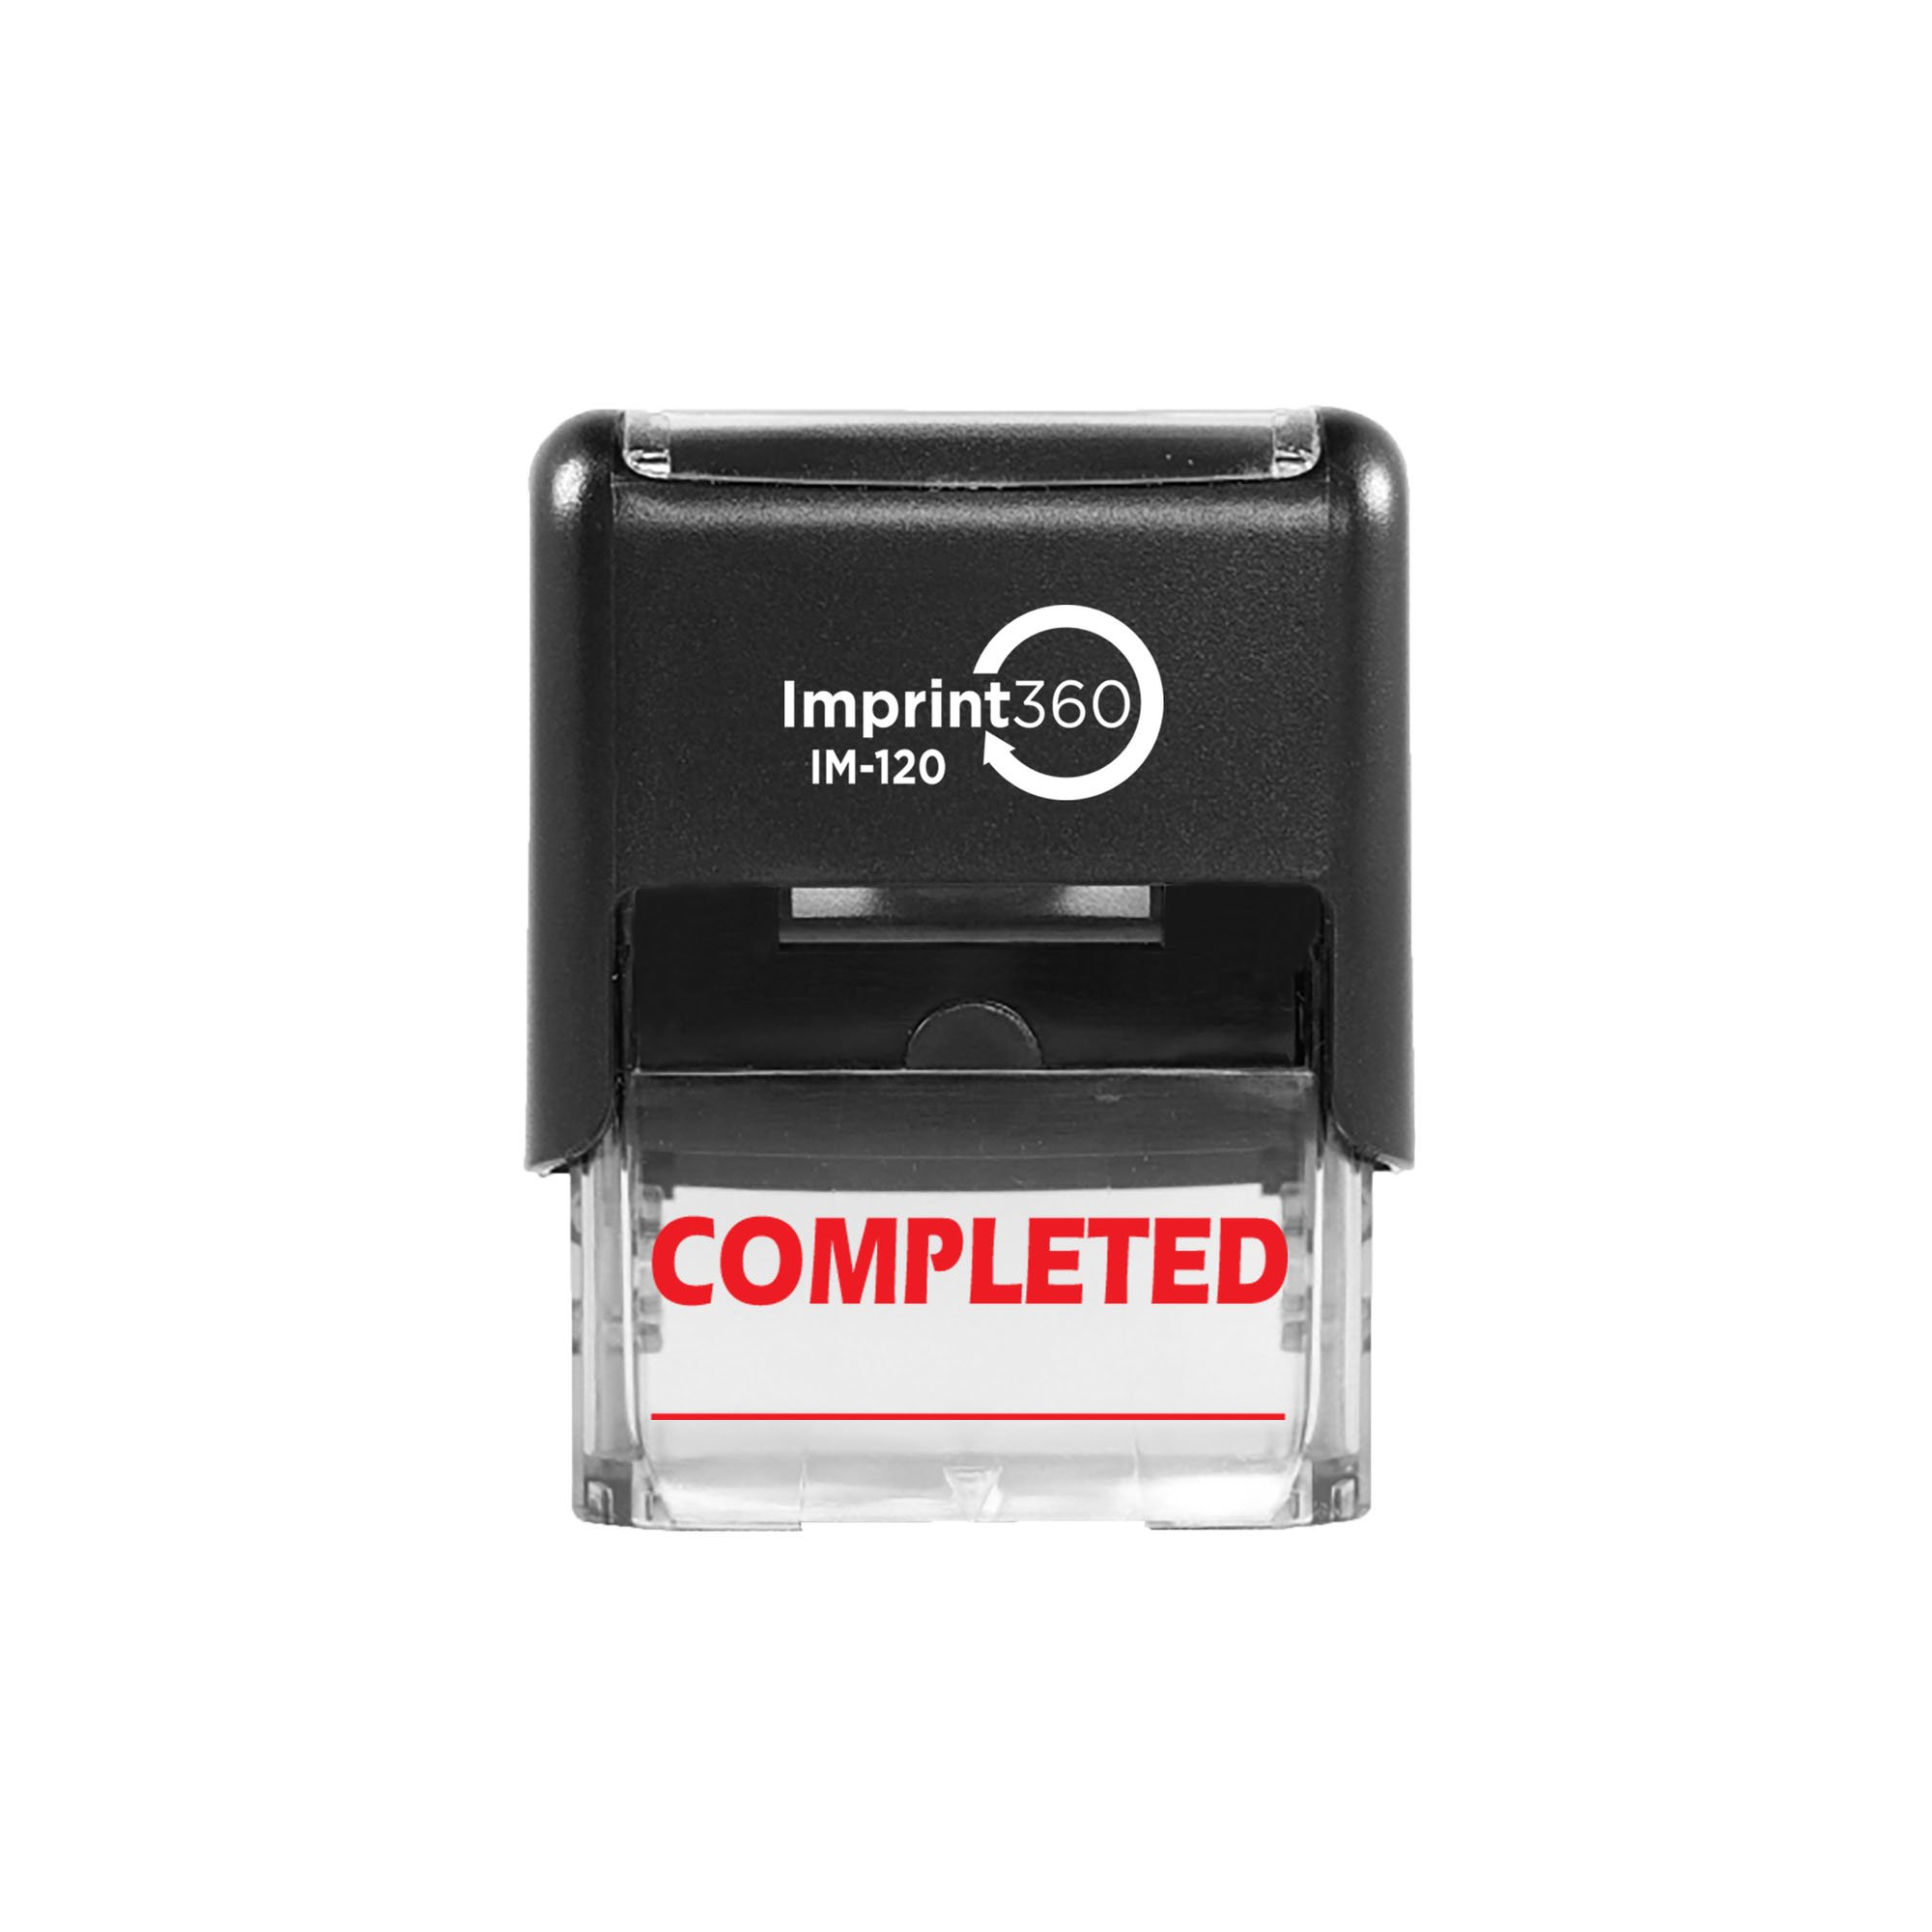 """Imprint 360 AS-IMP1037 - Completed w/Signature Line, Heavy Duty Commerical Quality Self-Inking Rubber Stamp, Red Ink, 9/16"""" x 1-1/2"""" Impression Size, Laser Engraved for Clean, Precise Imprints"""